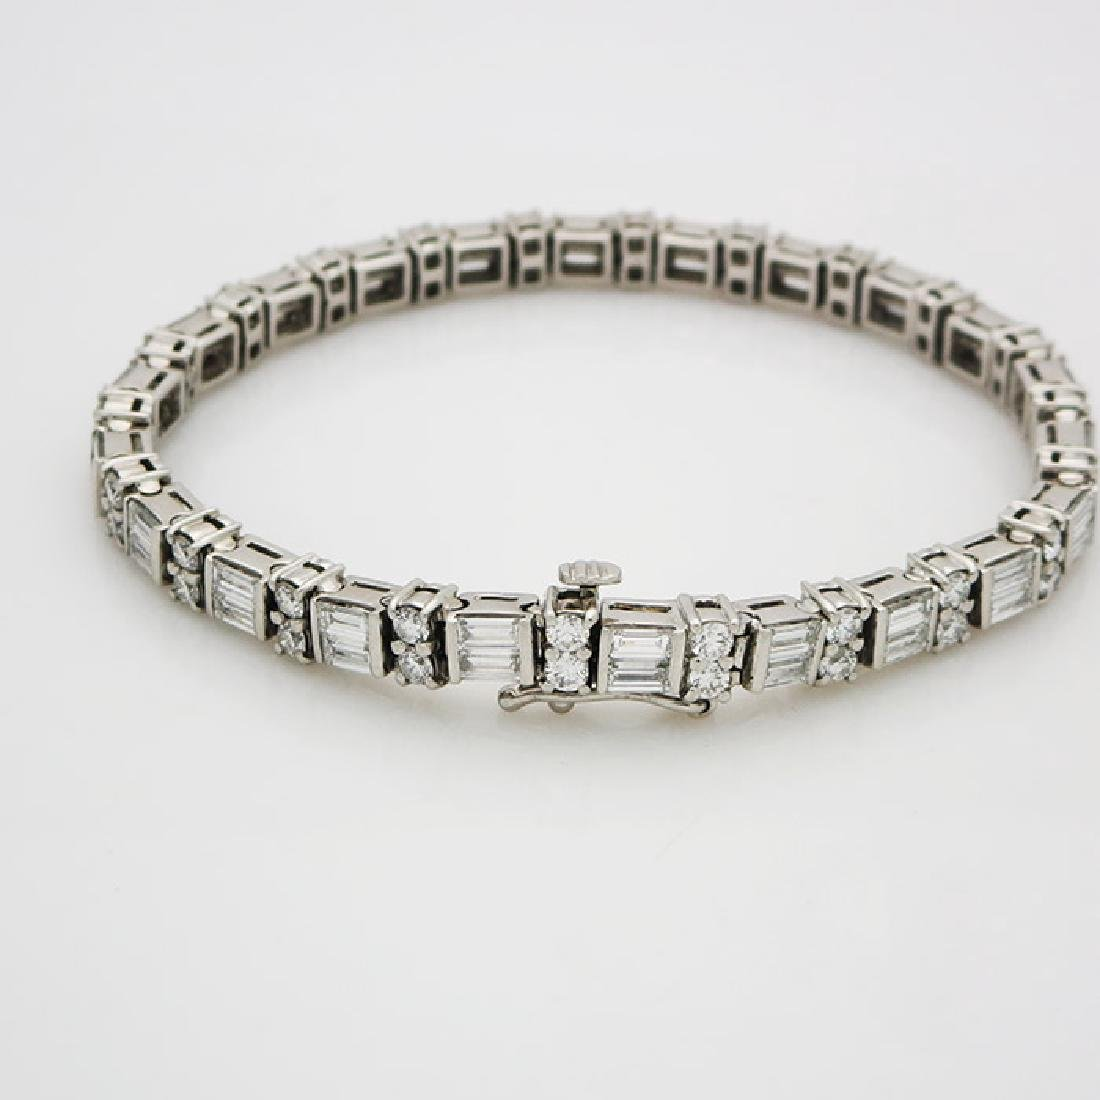 Estate 950 Platinum and apx 8CT VS/F Diamond Bracelet